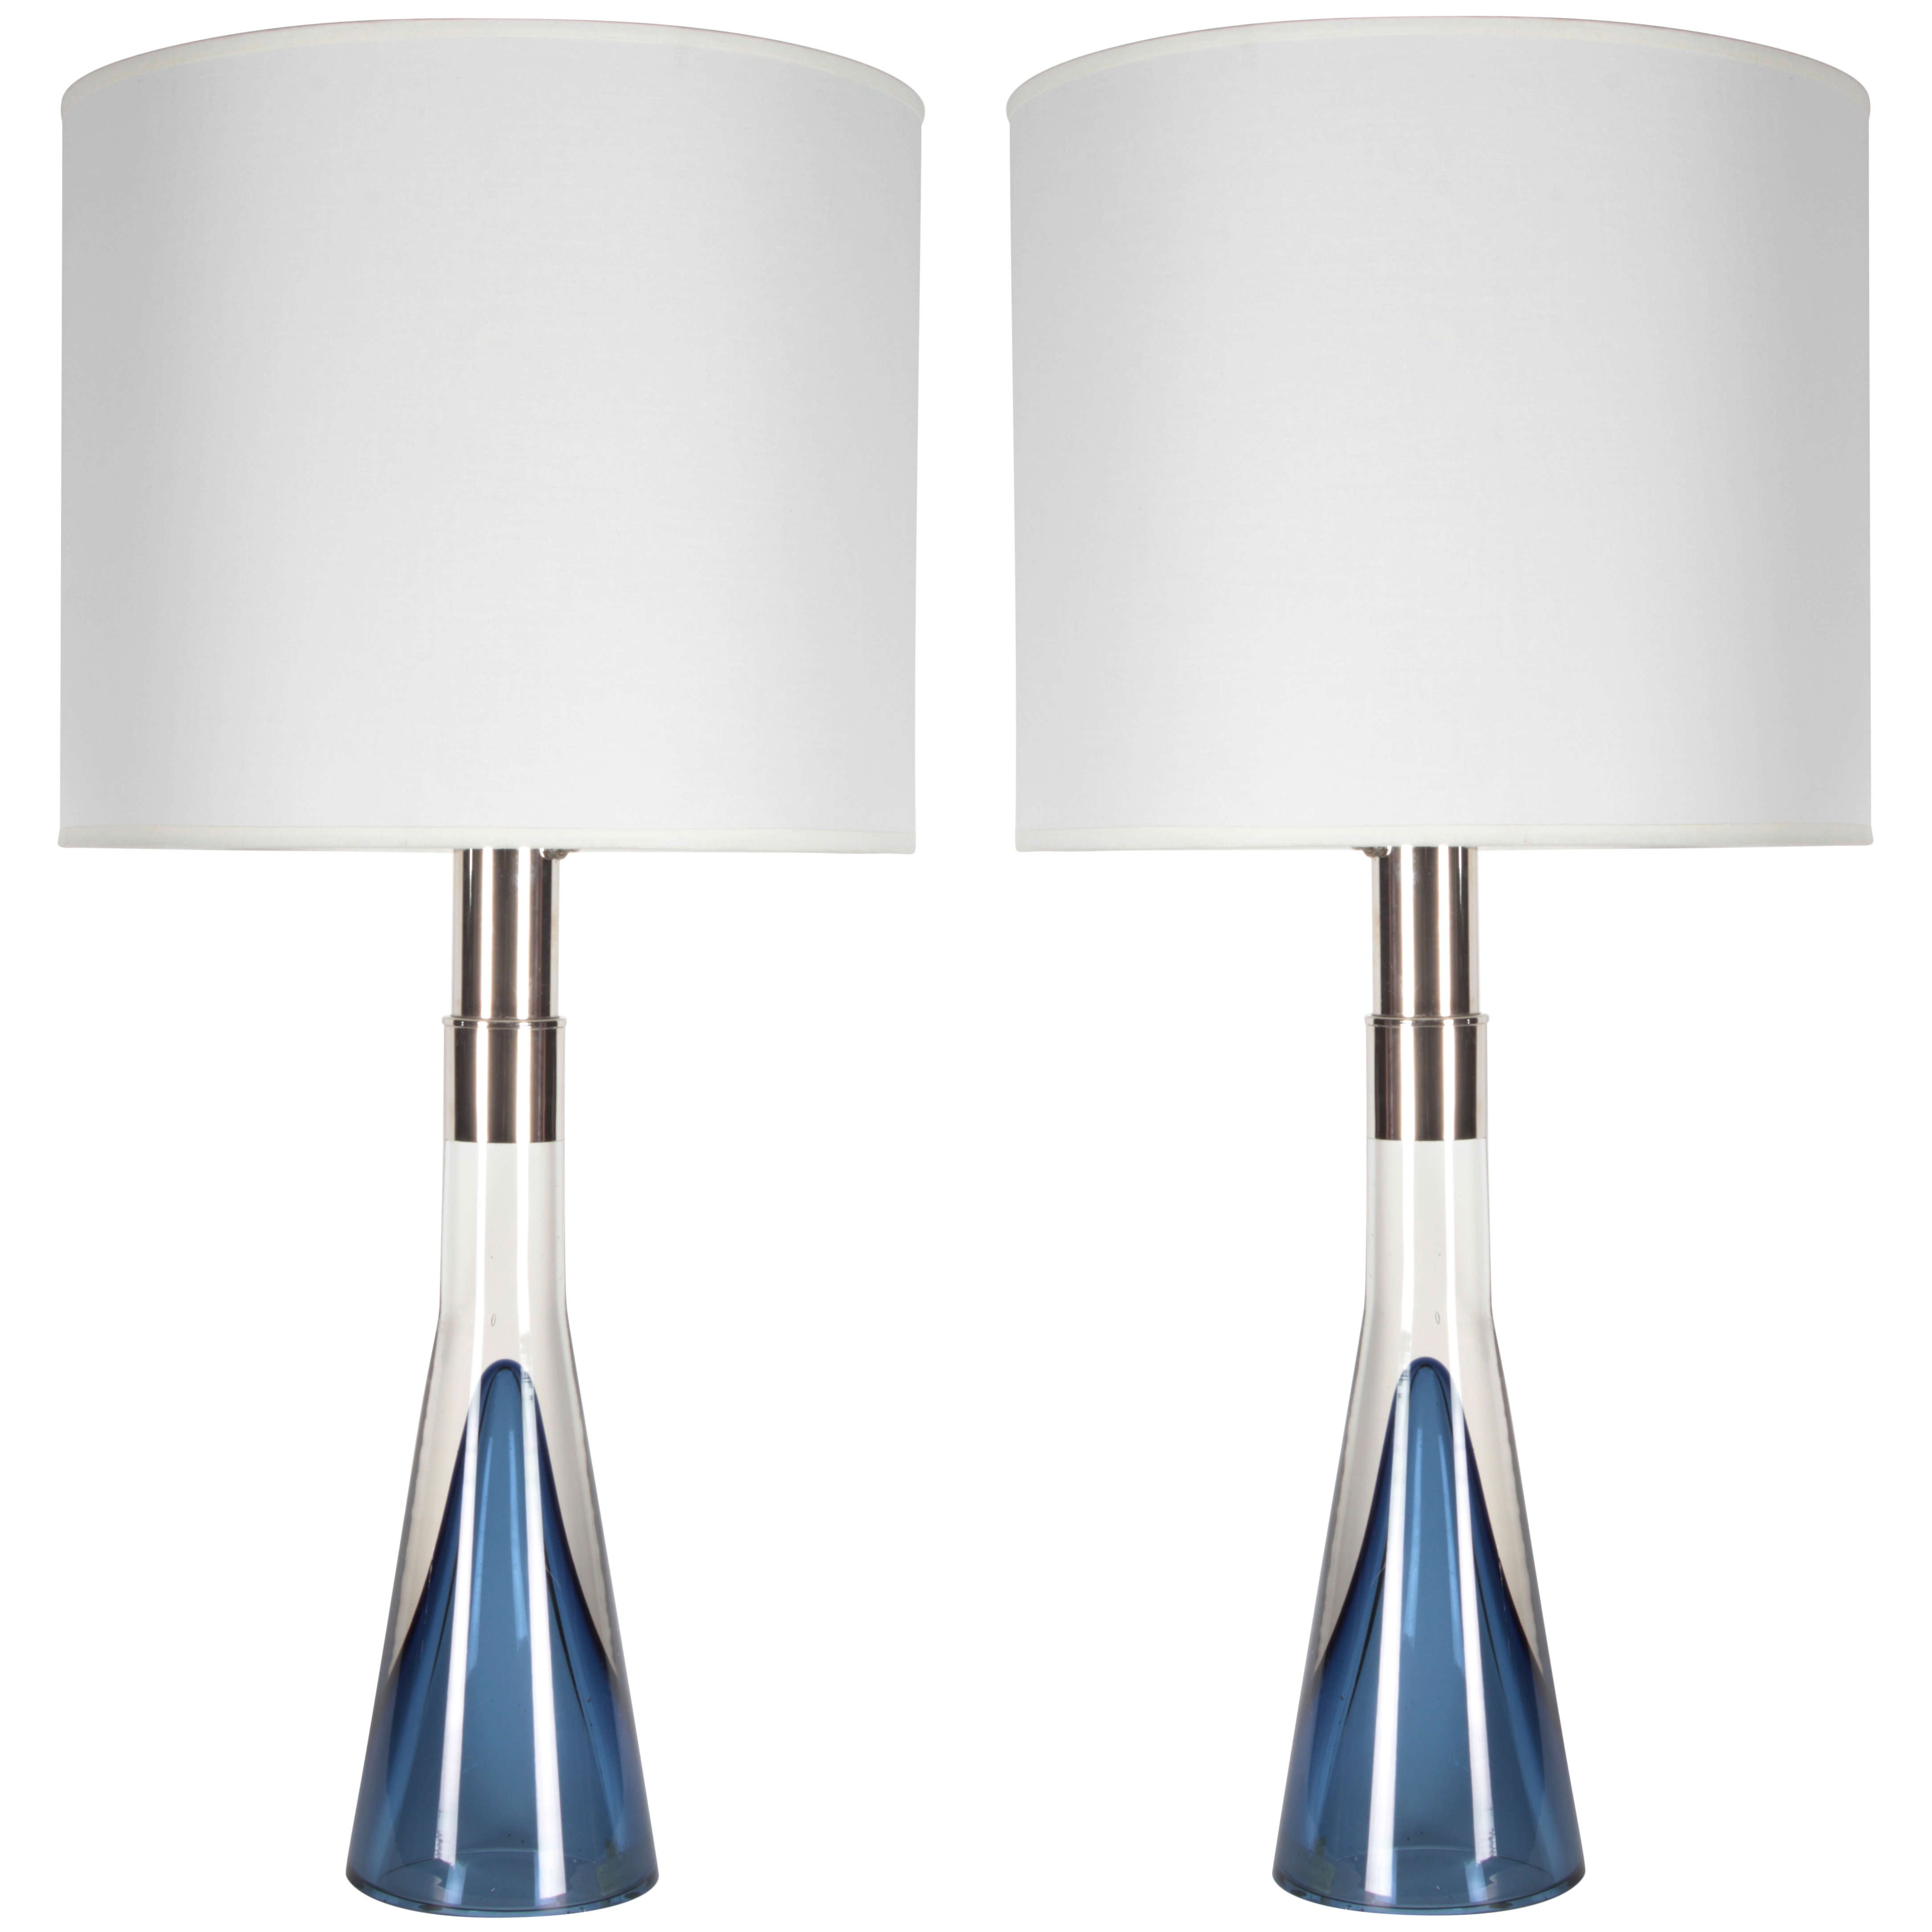 Pair of Clear & Blue Crystal Lamps by Lisa Johansson-Pape